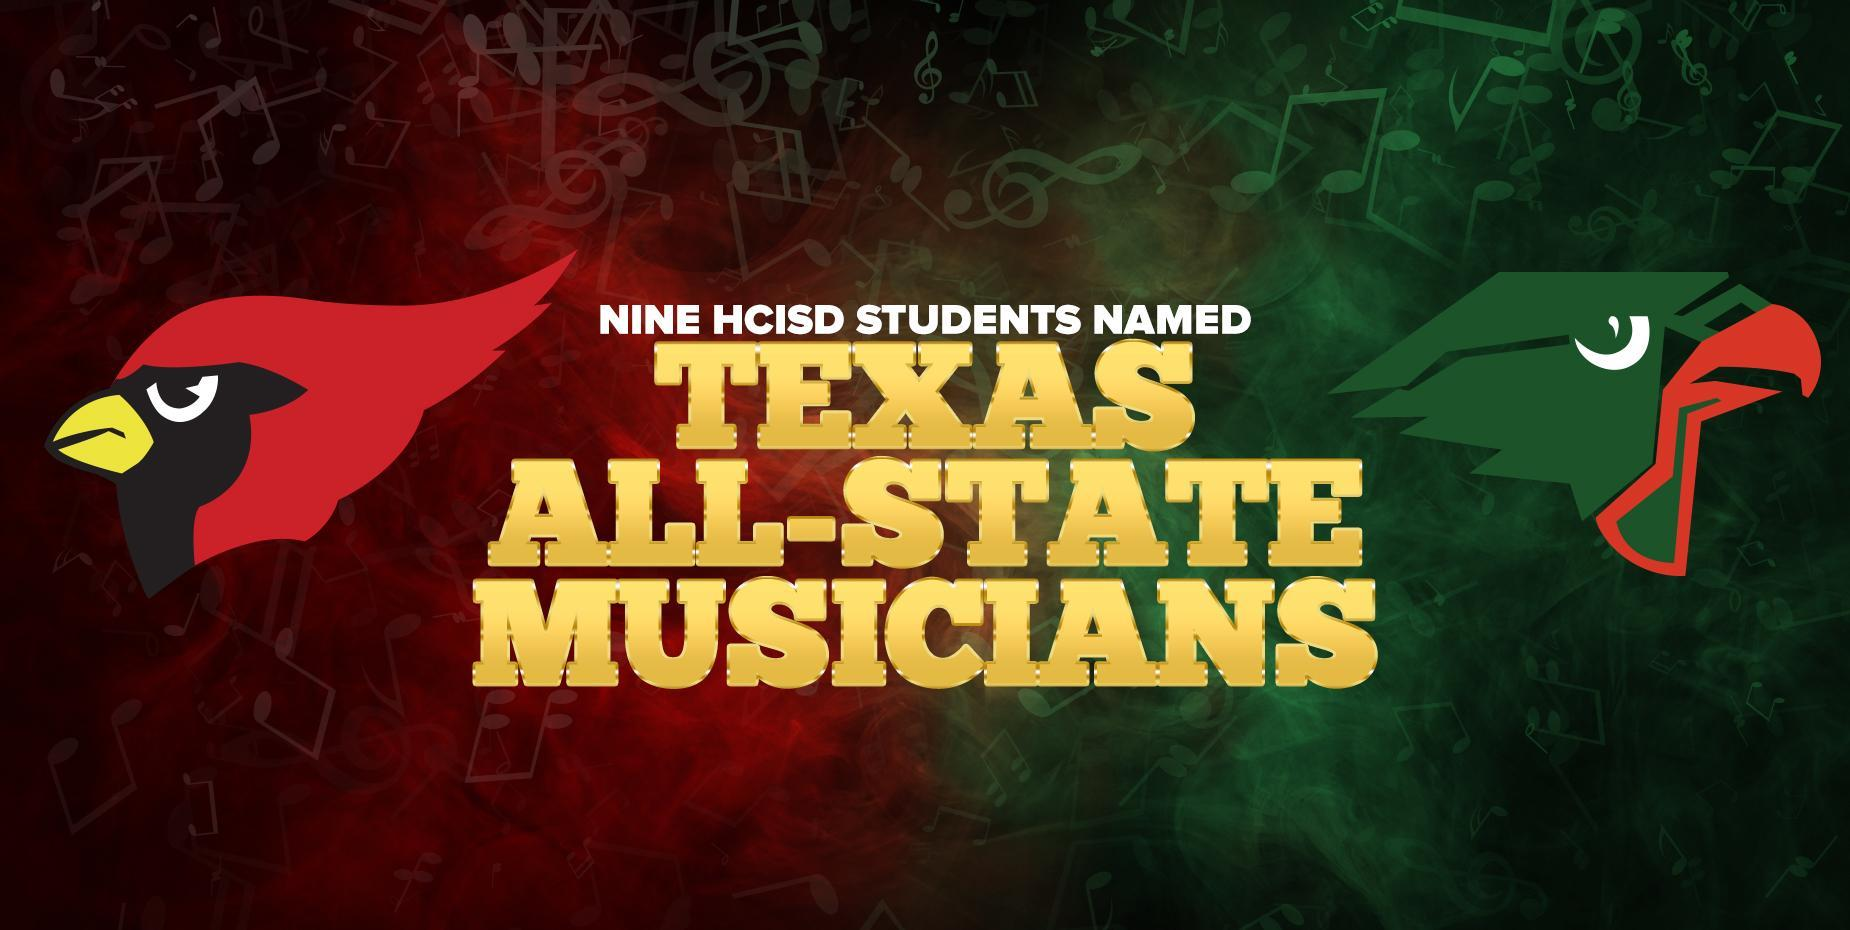 Nine HCISD students named Texas All-State Musicians